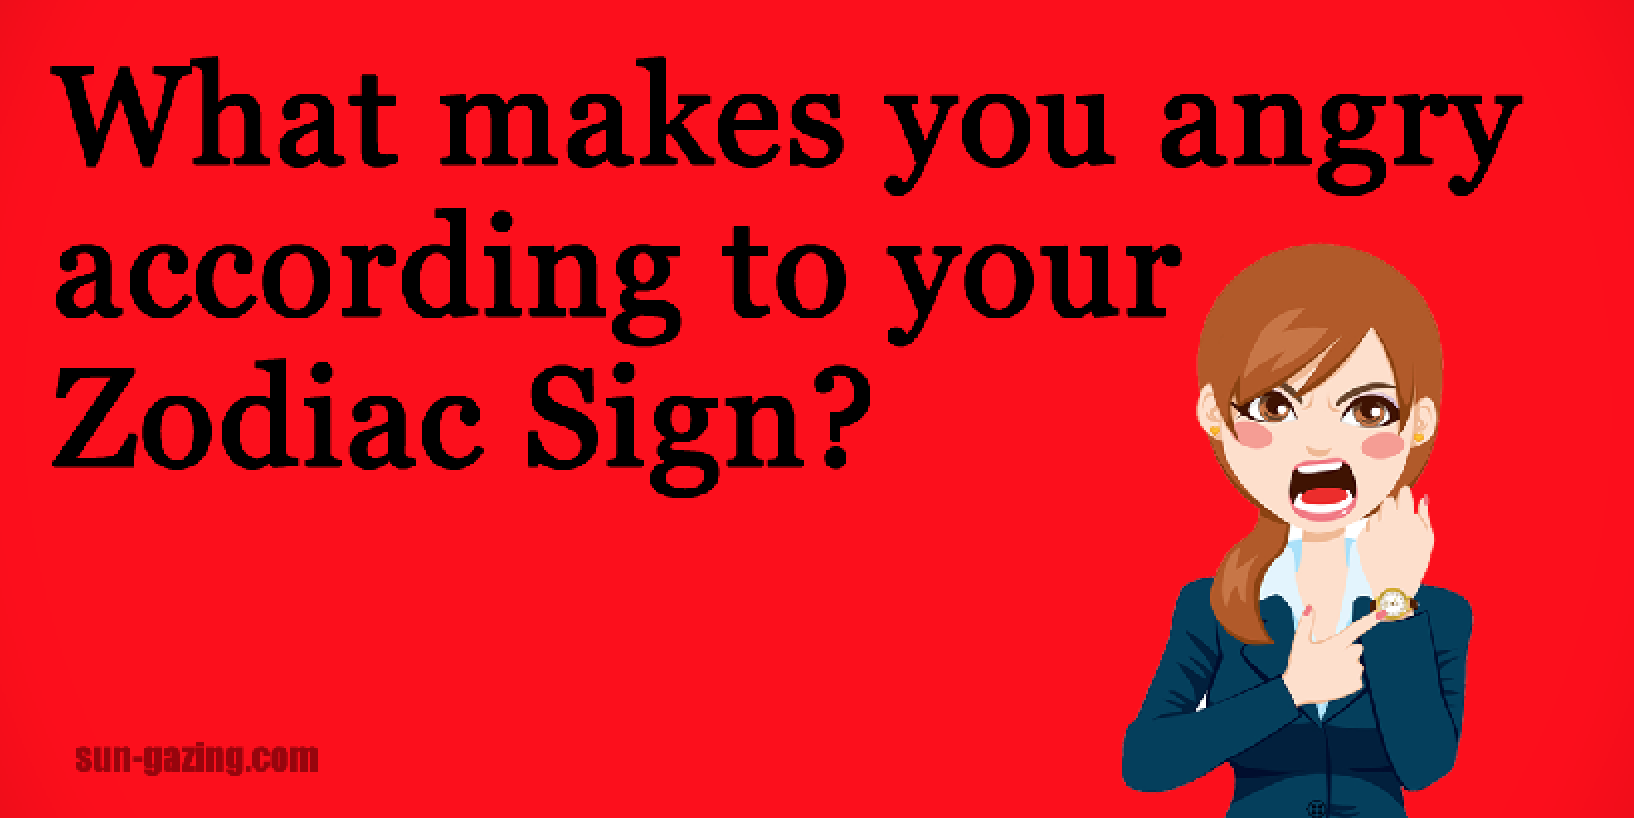 What Makes You Angry According To Your Zodiac Sign?